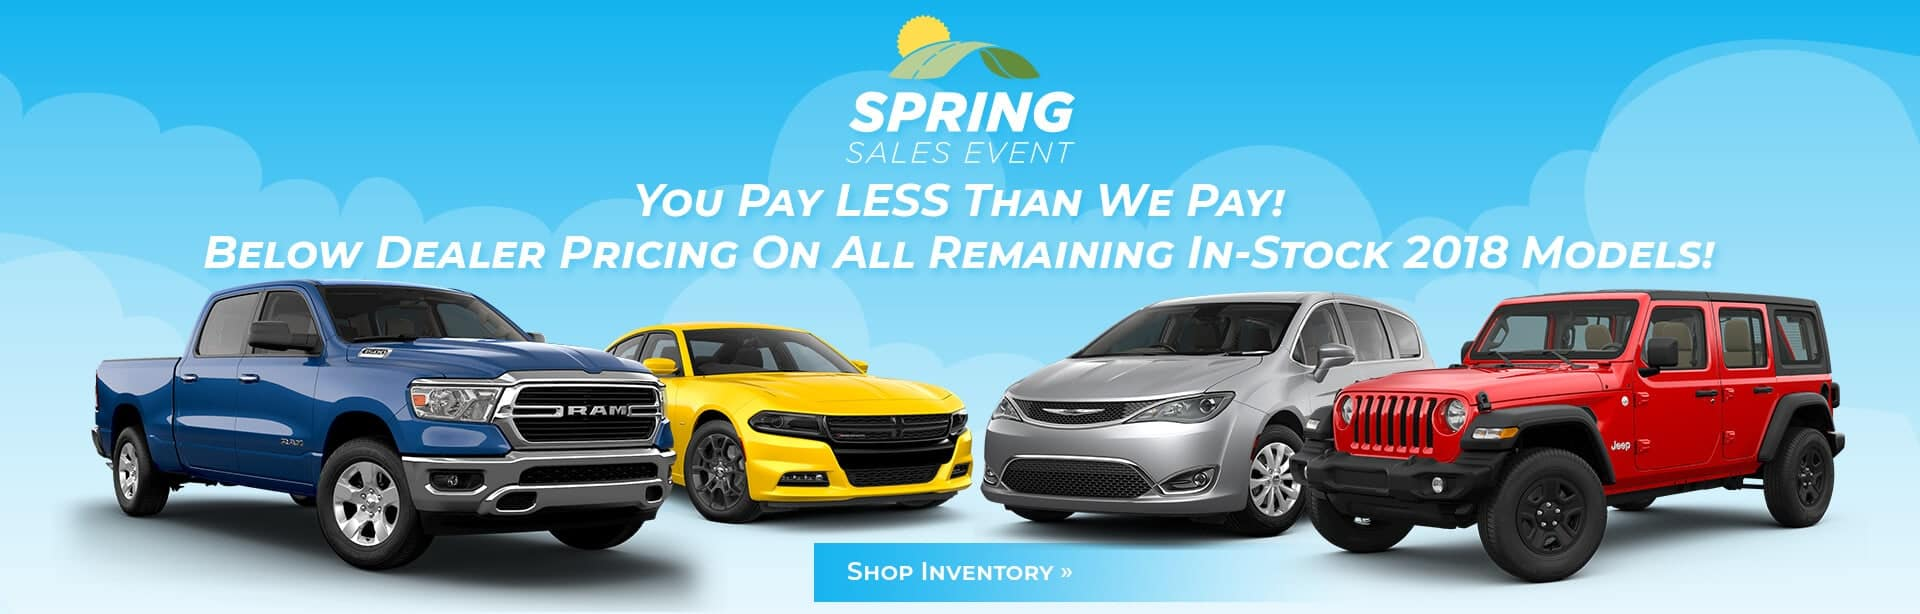 Great Deals on all Remaining 2018 Chrysler Dodge Jeep Ram Inventory.